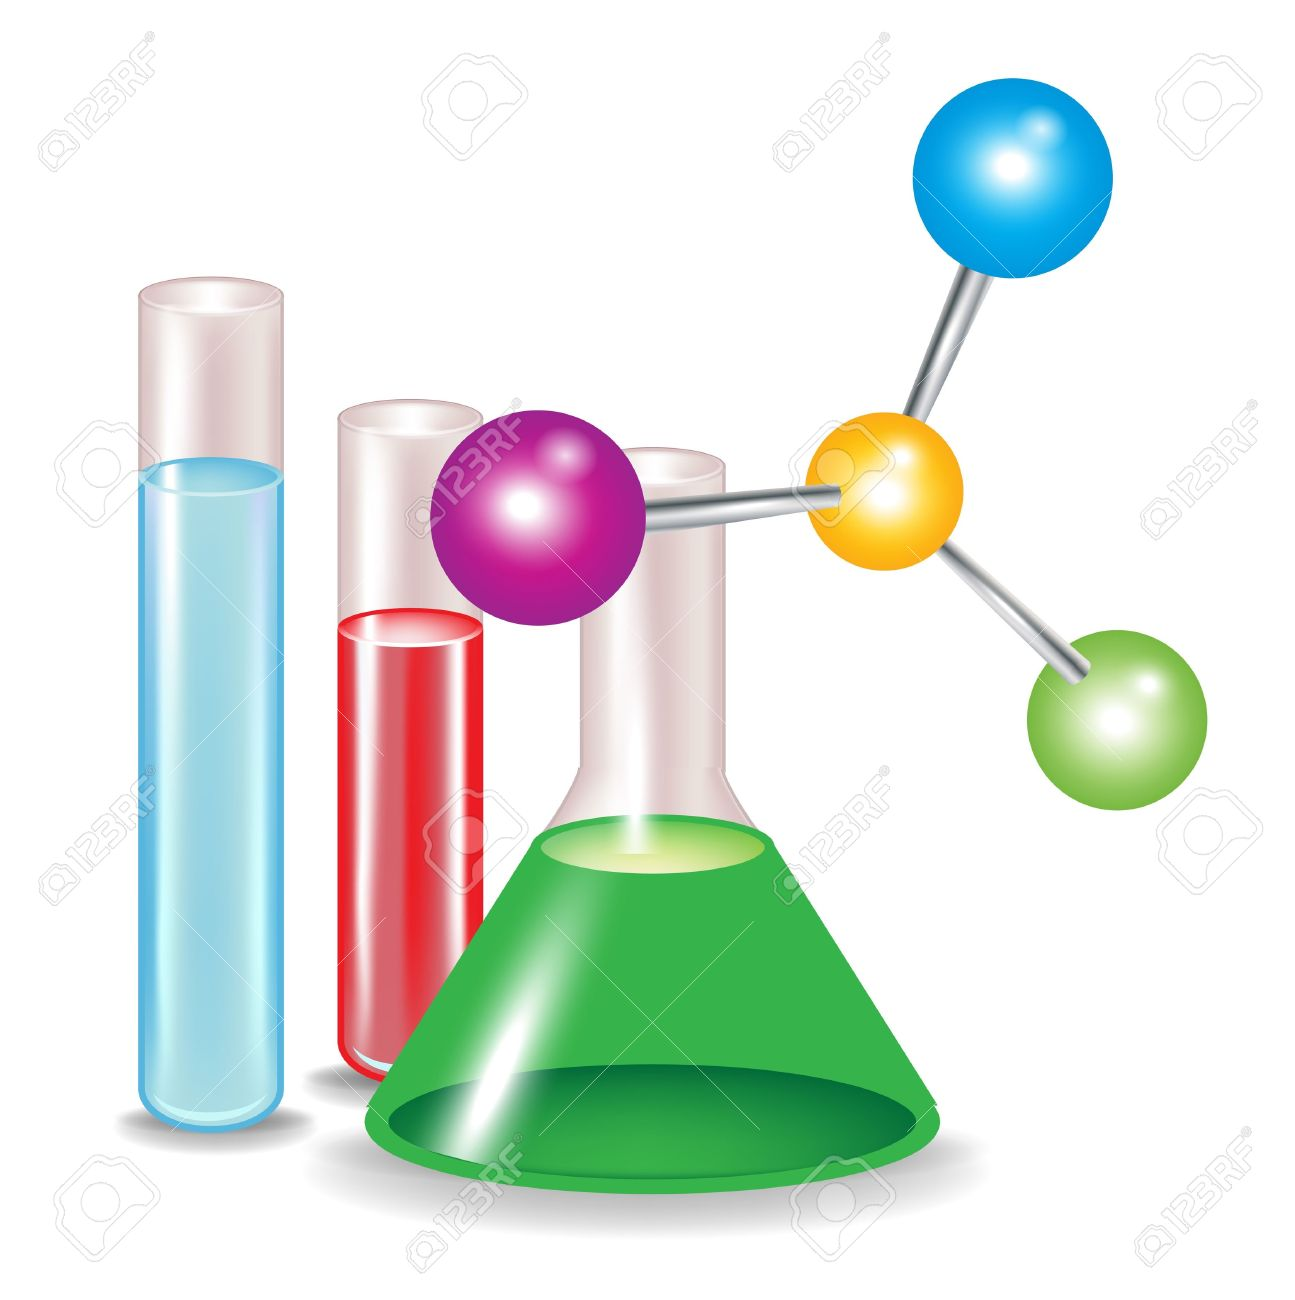 Abstract Molecules And Chemical Substance Containers Isolated.